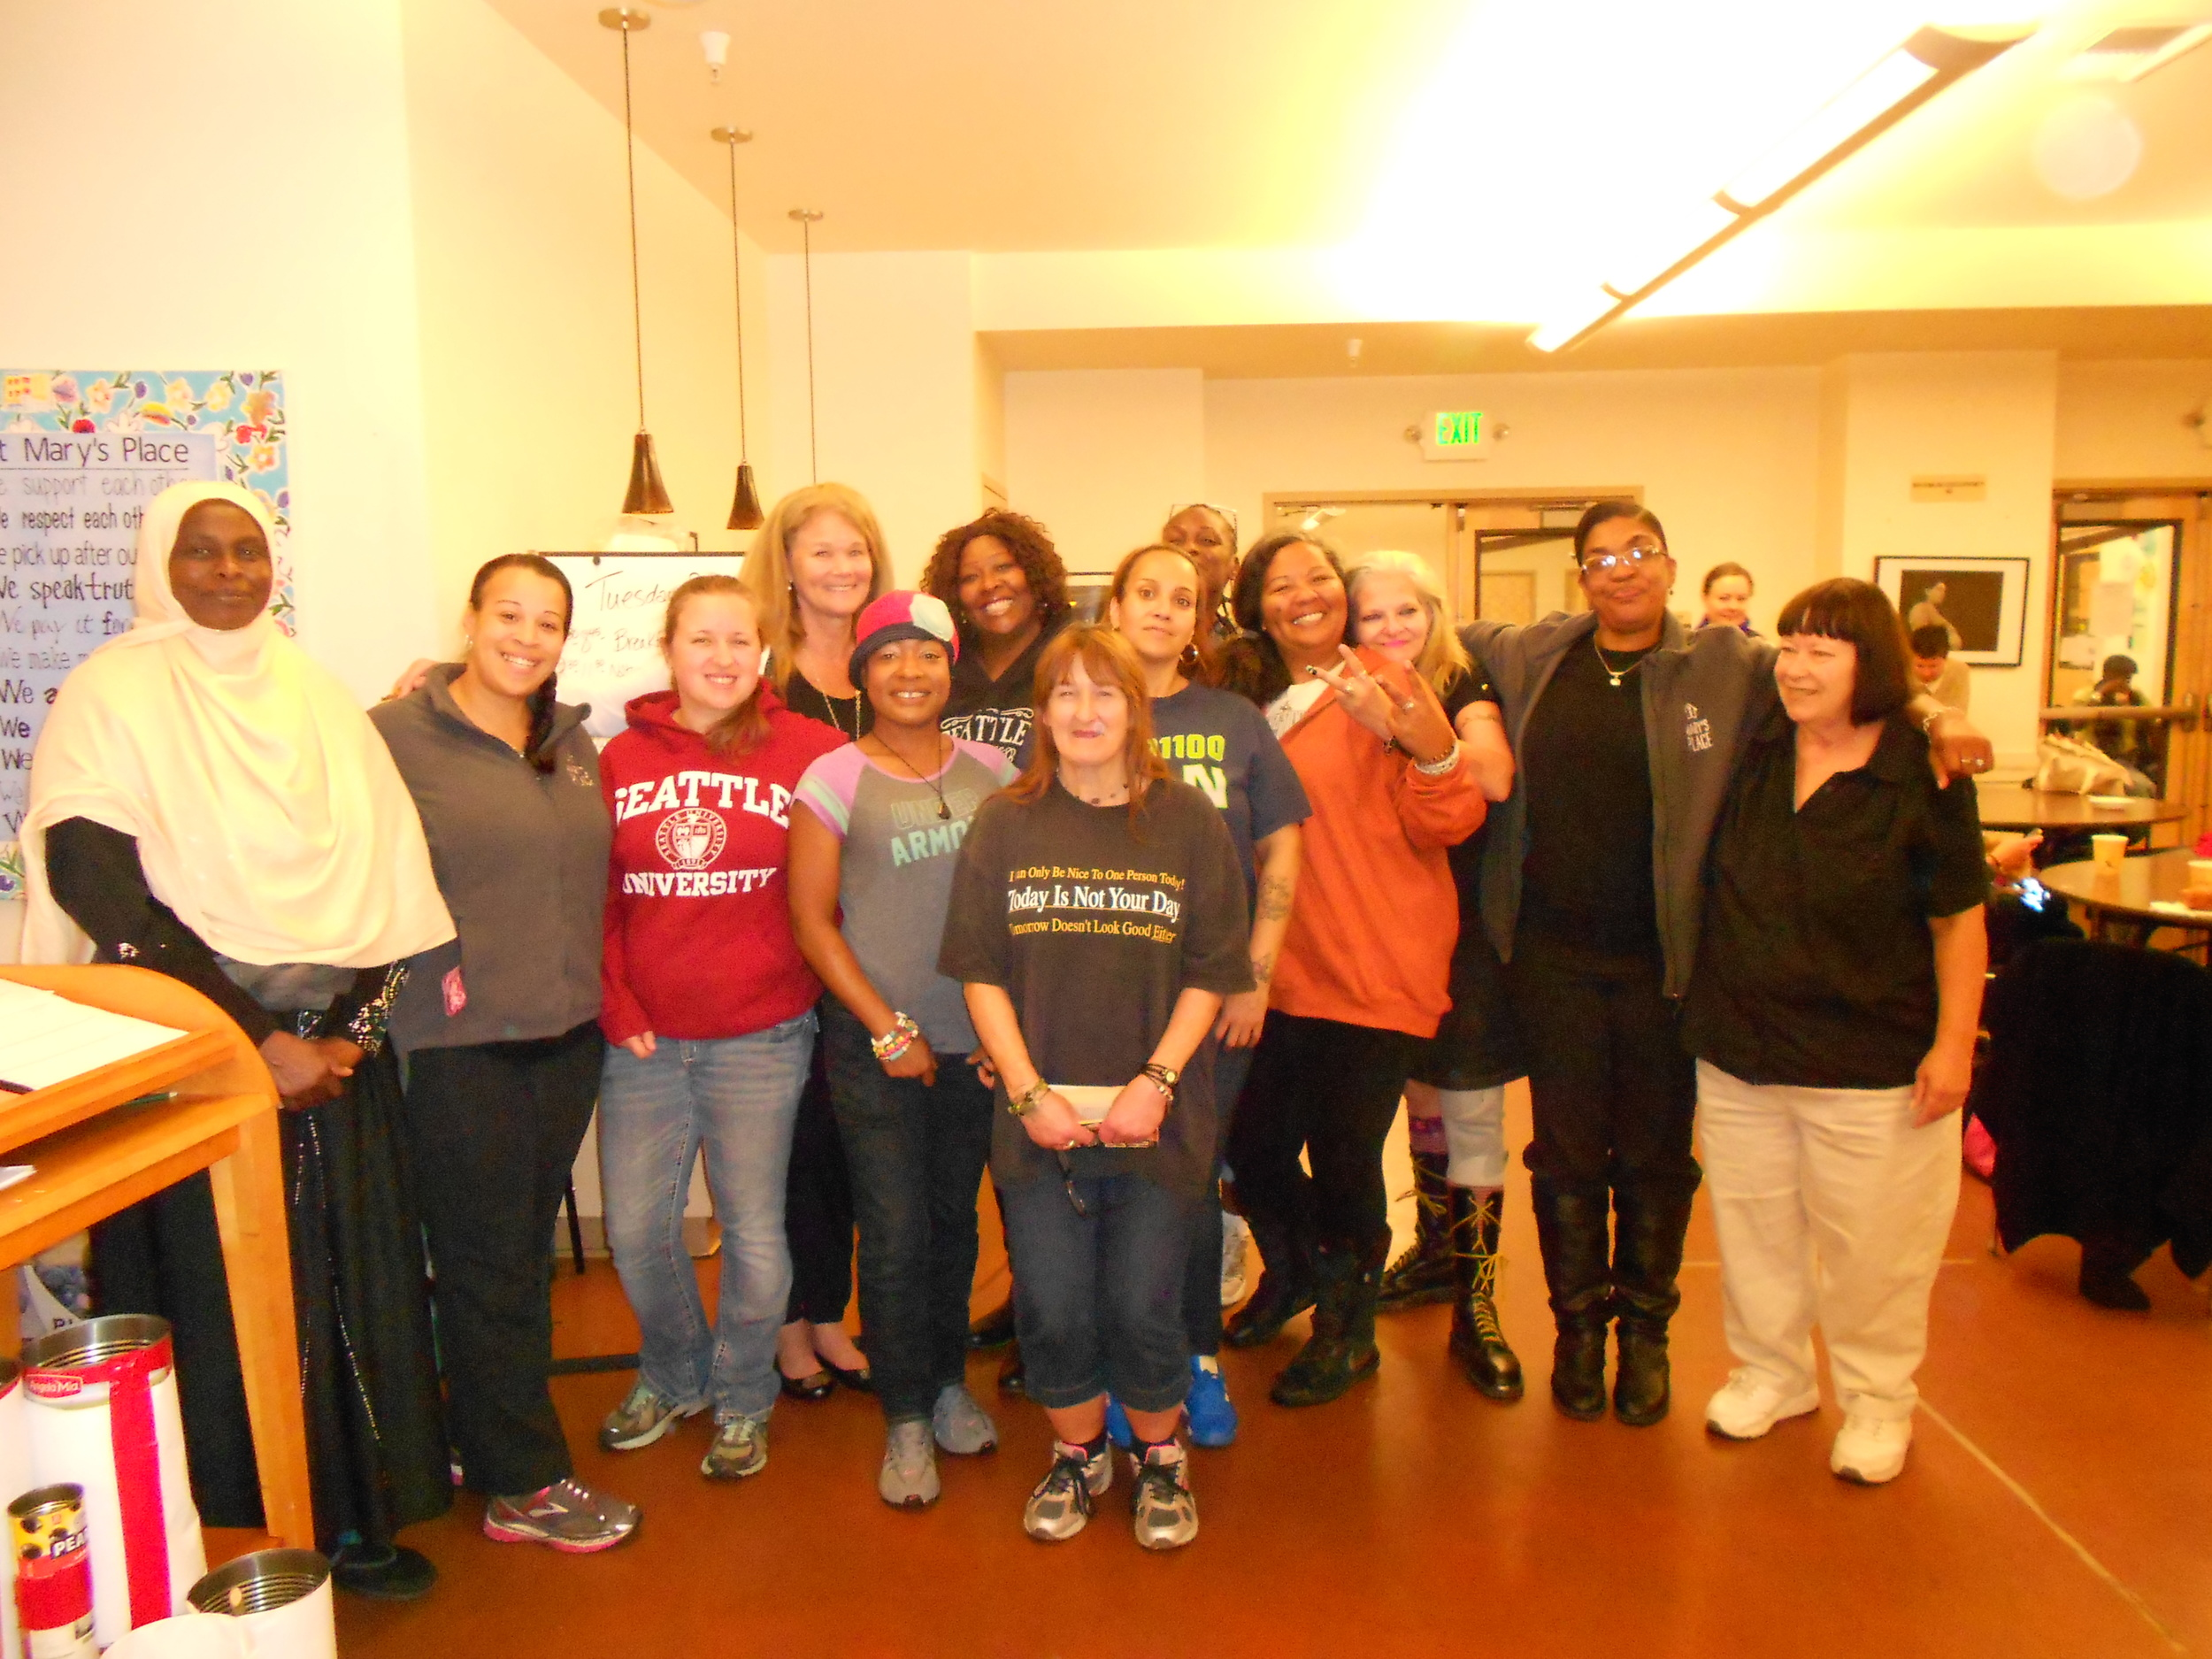 Some of the Mary's Place staff, interns, and women utilizing the day center.